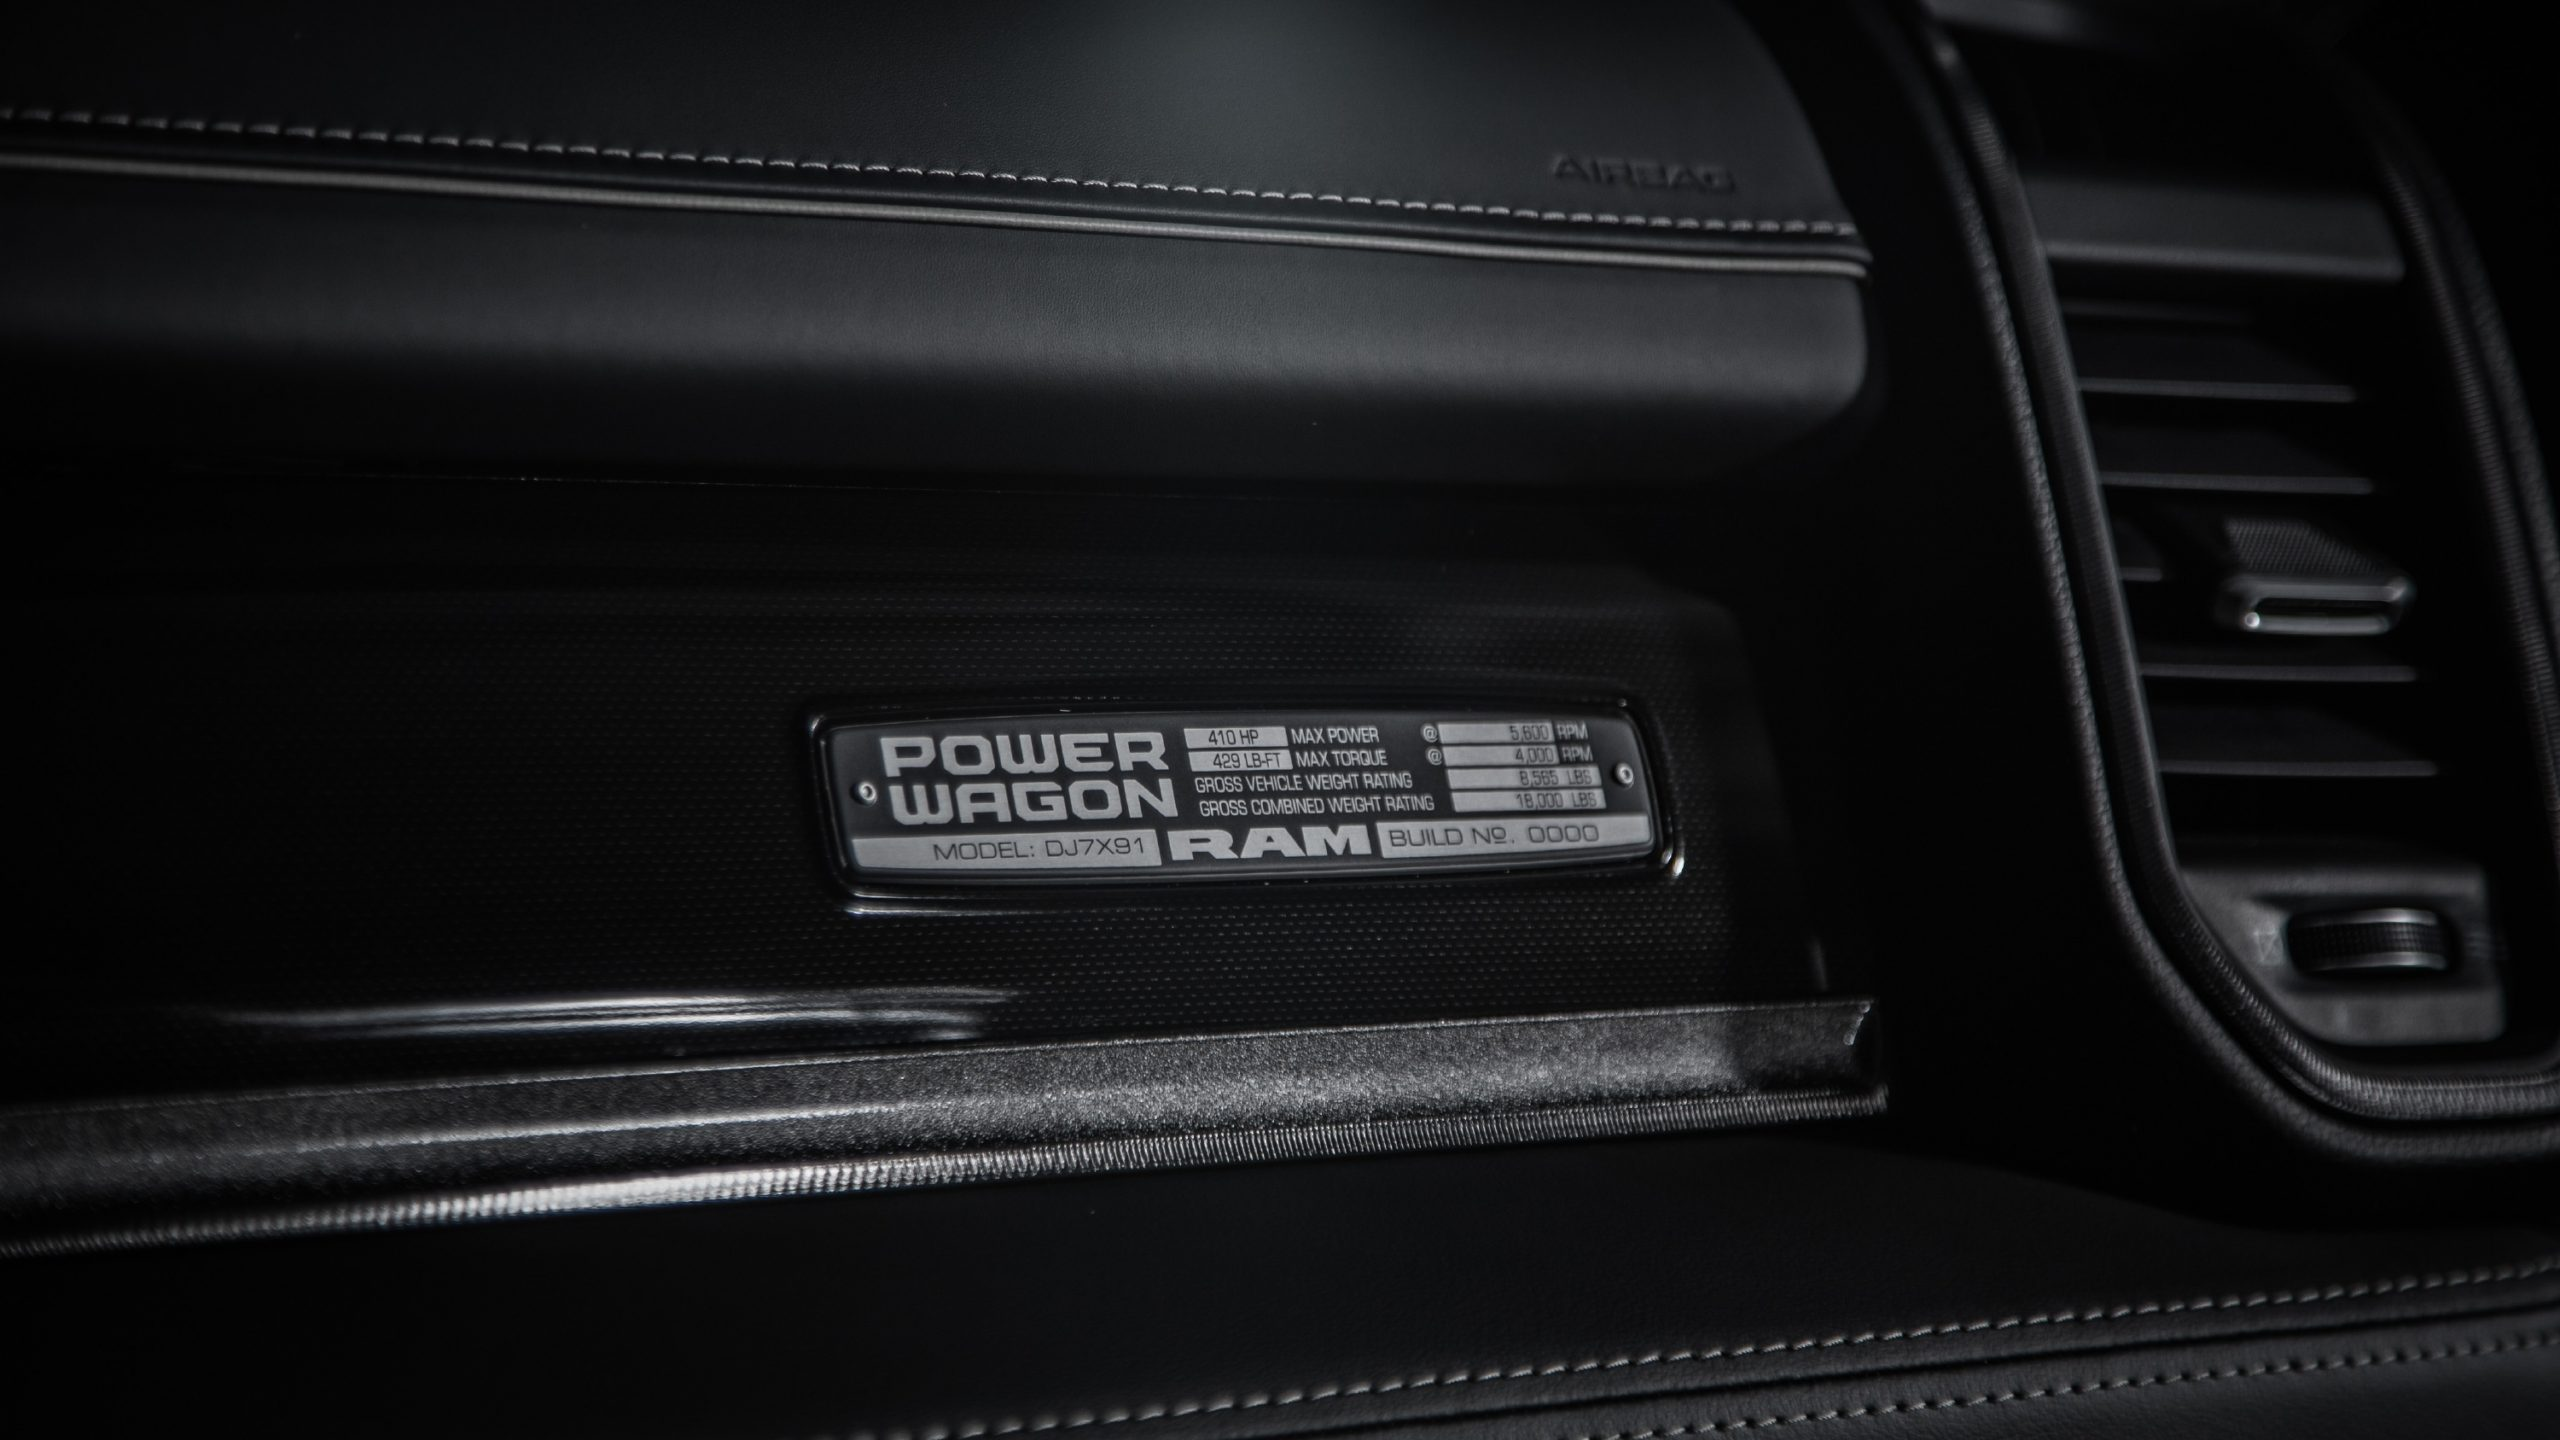 2021 Ram Power Wagon 75th Anniversary Edition badge